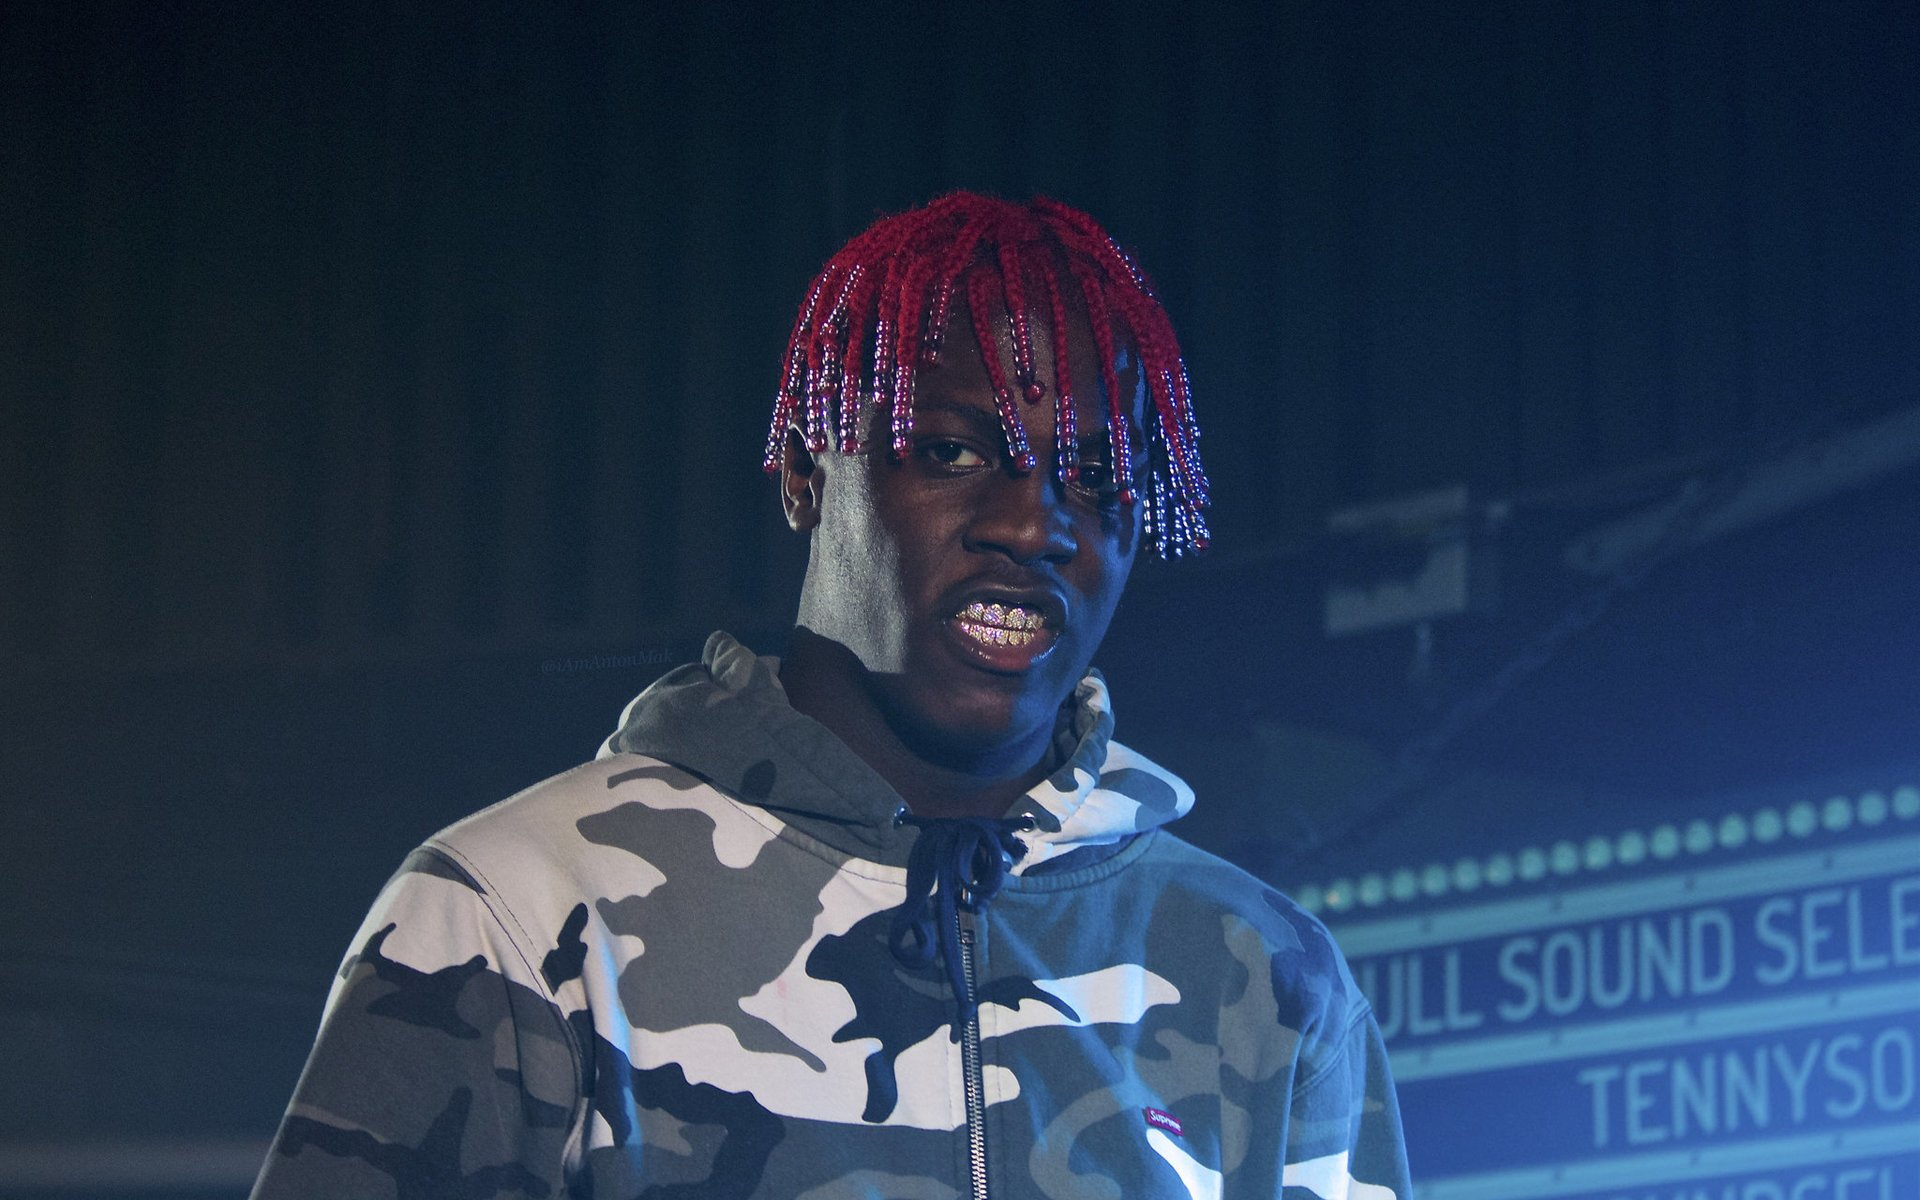 Lil Yachty Wallpaper & Lil Yachty Songs Theme Lil Yachty Background, Lil Yachty Songs, Lil Yachty Album & Lil Yachty Wallpaper